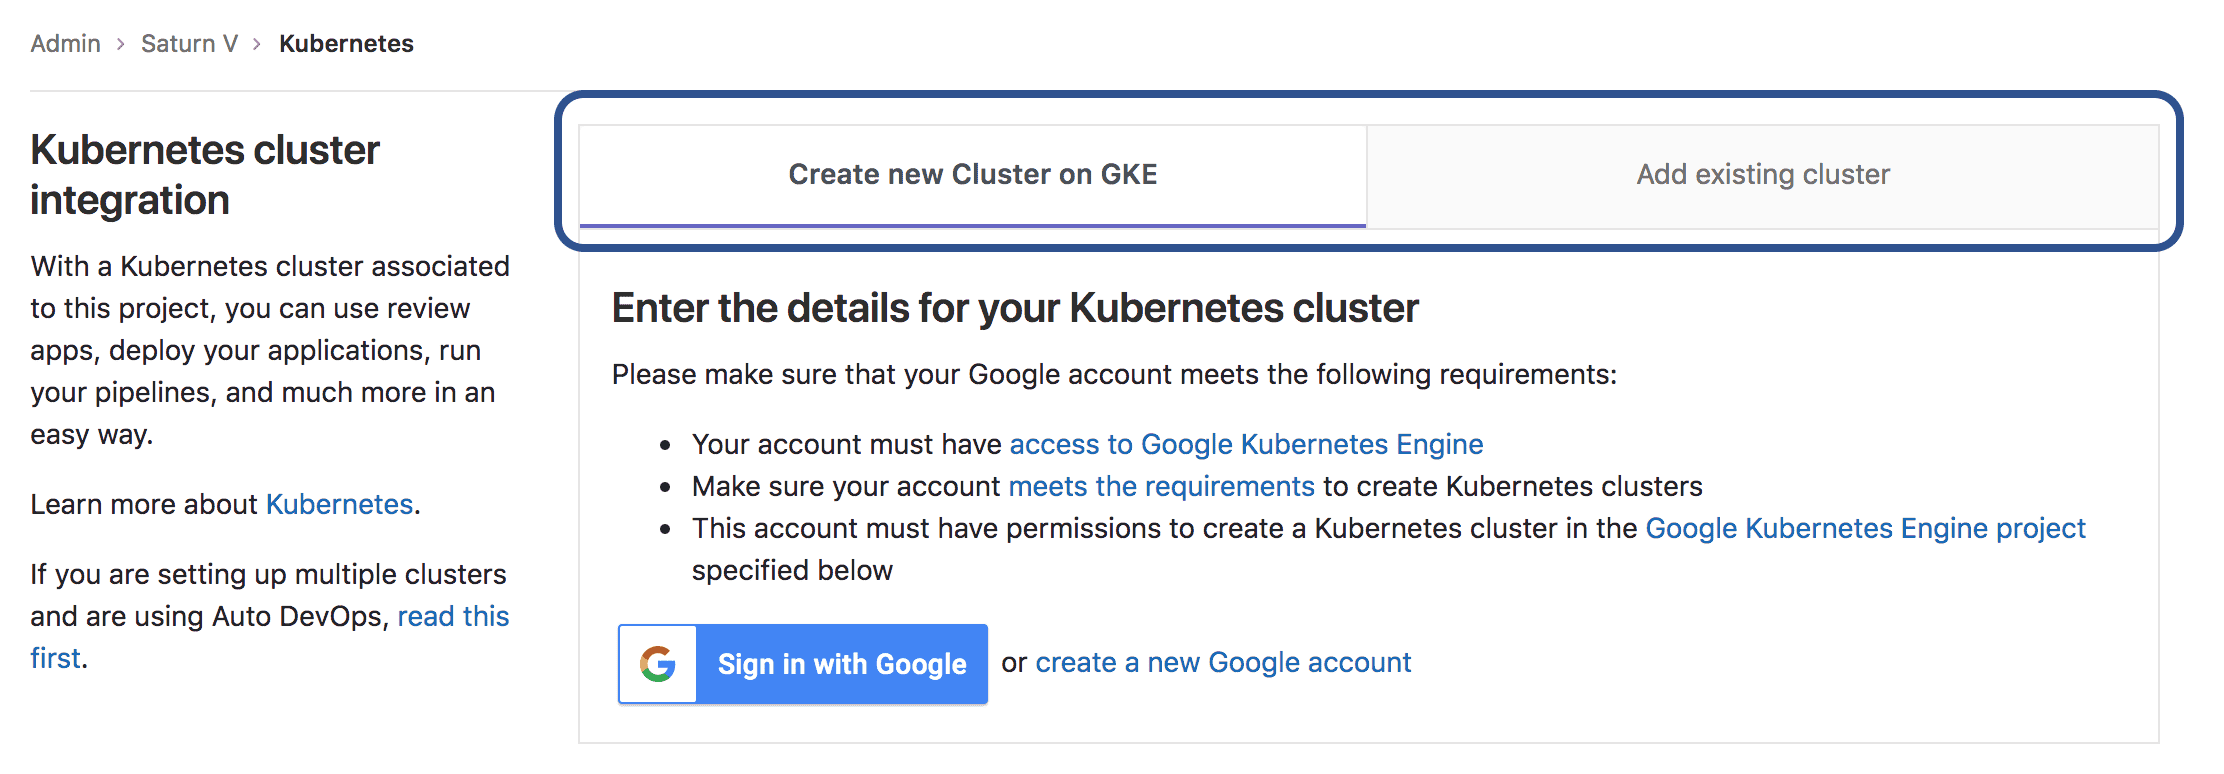 Improved Kubernetes Cluster page design